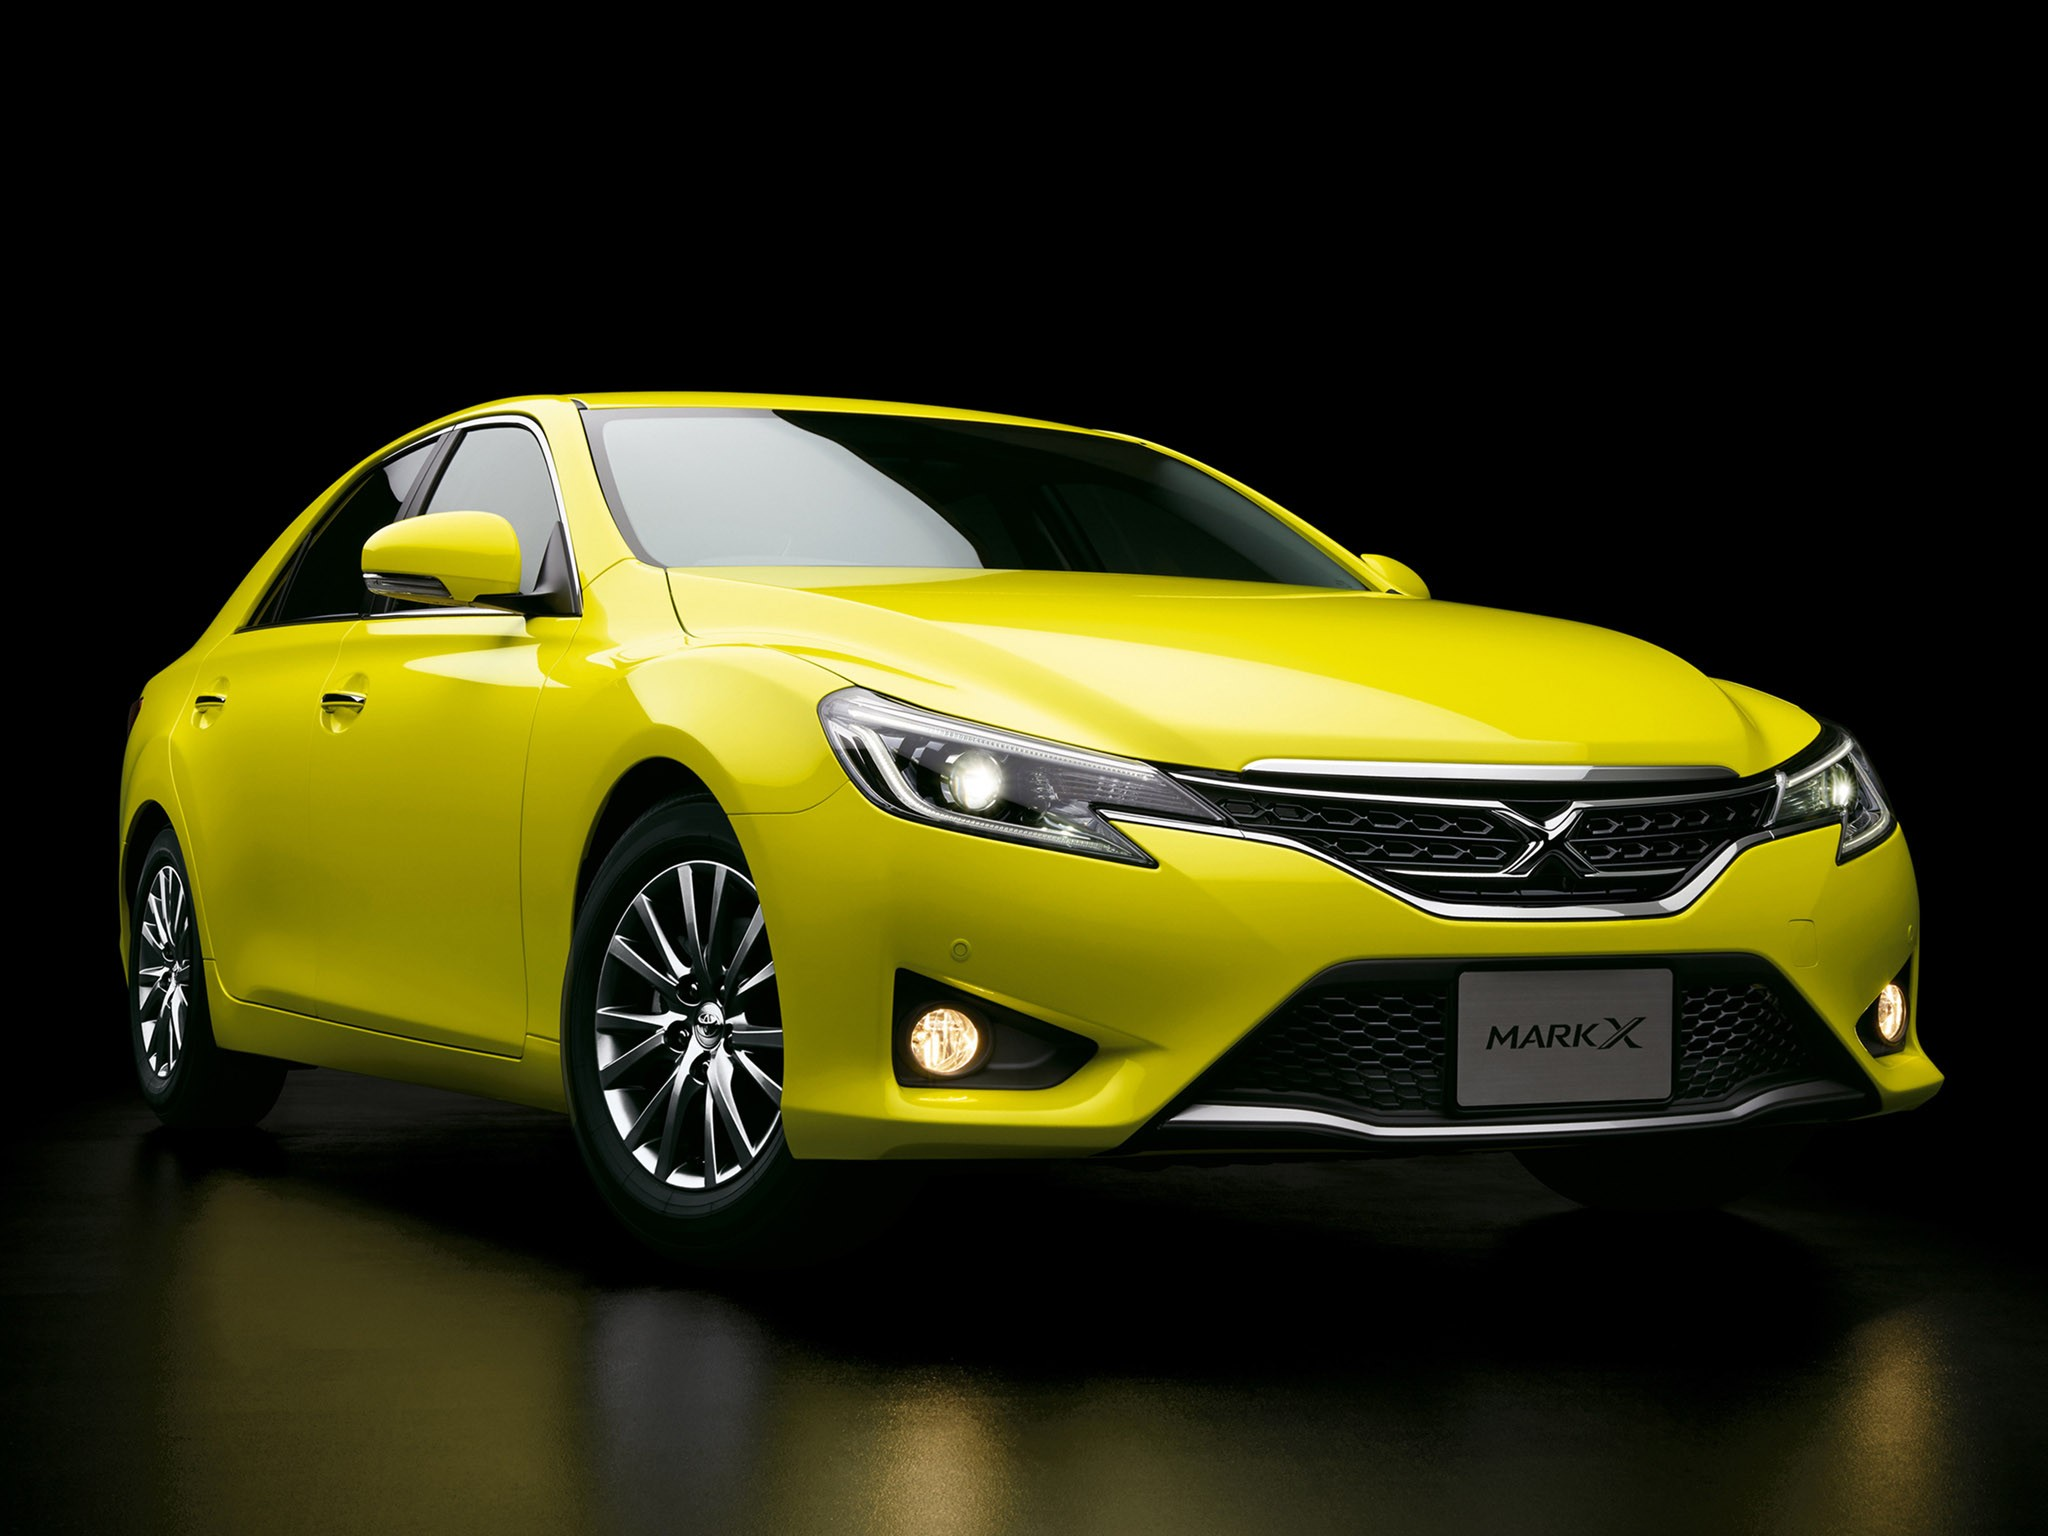 2014 Toyota Mark X 250G S Package Yellow Label GRX130